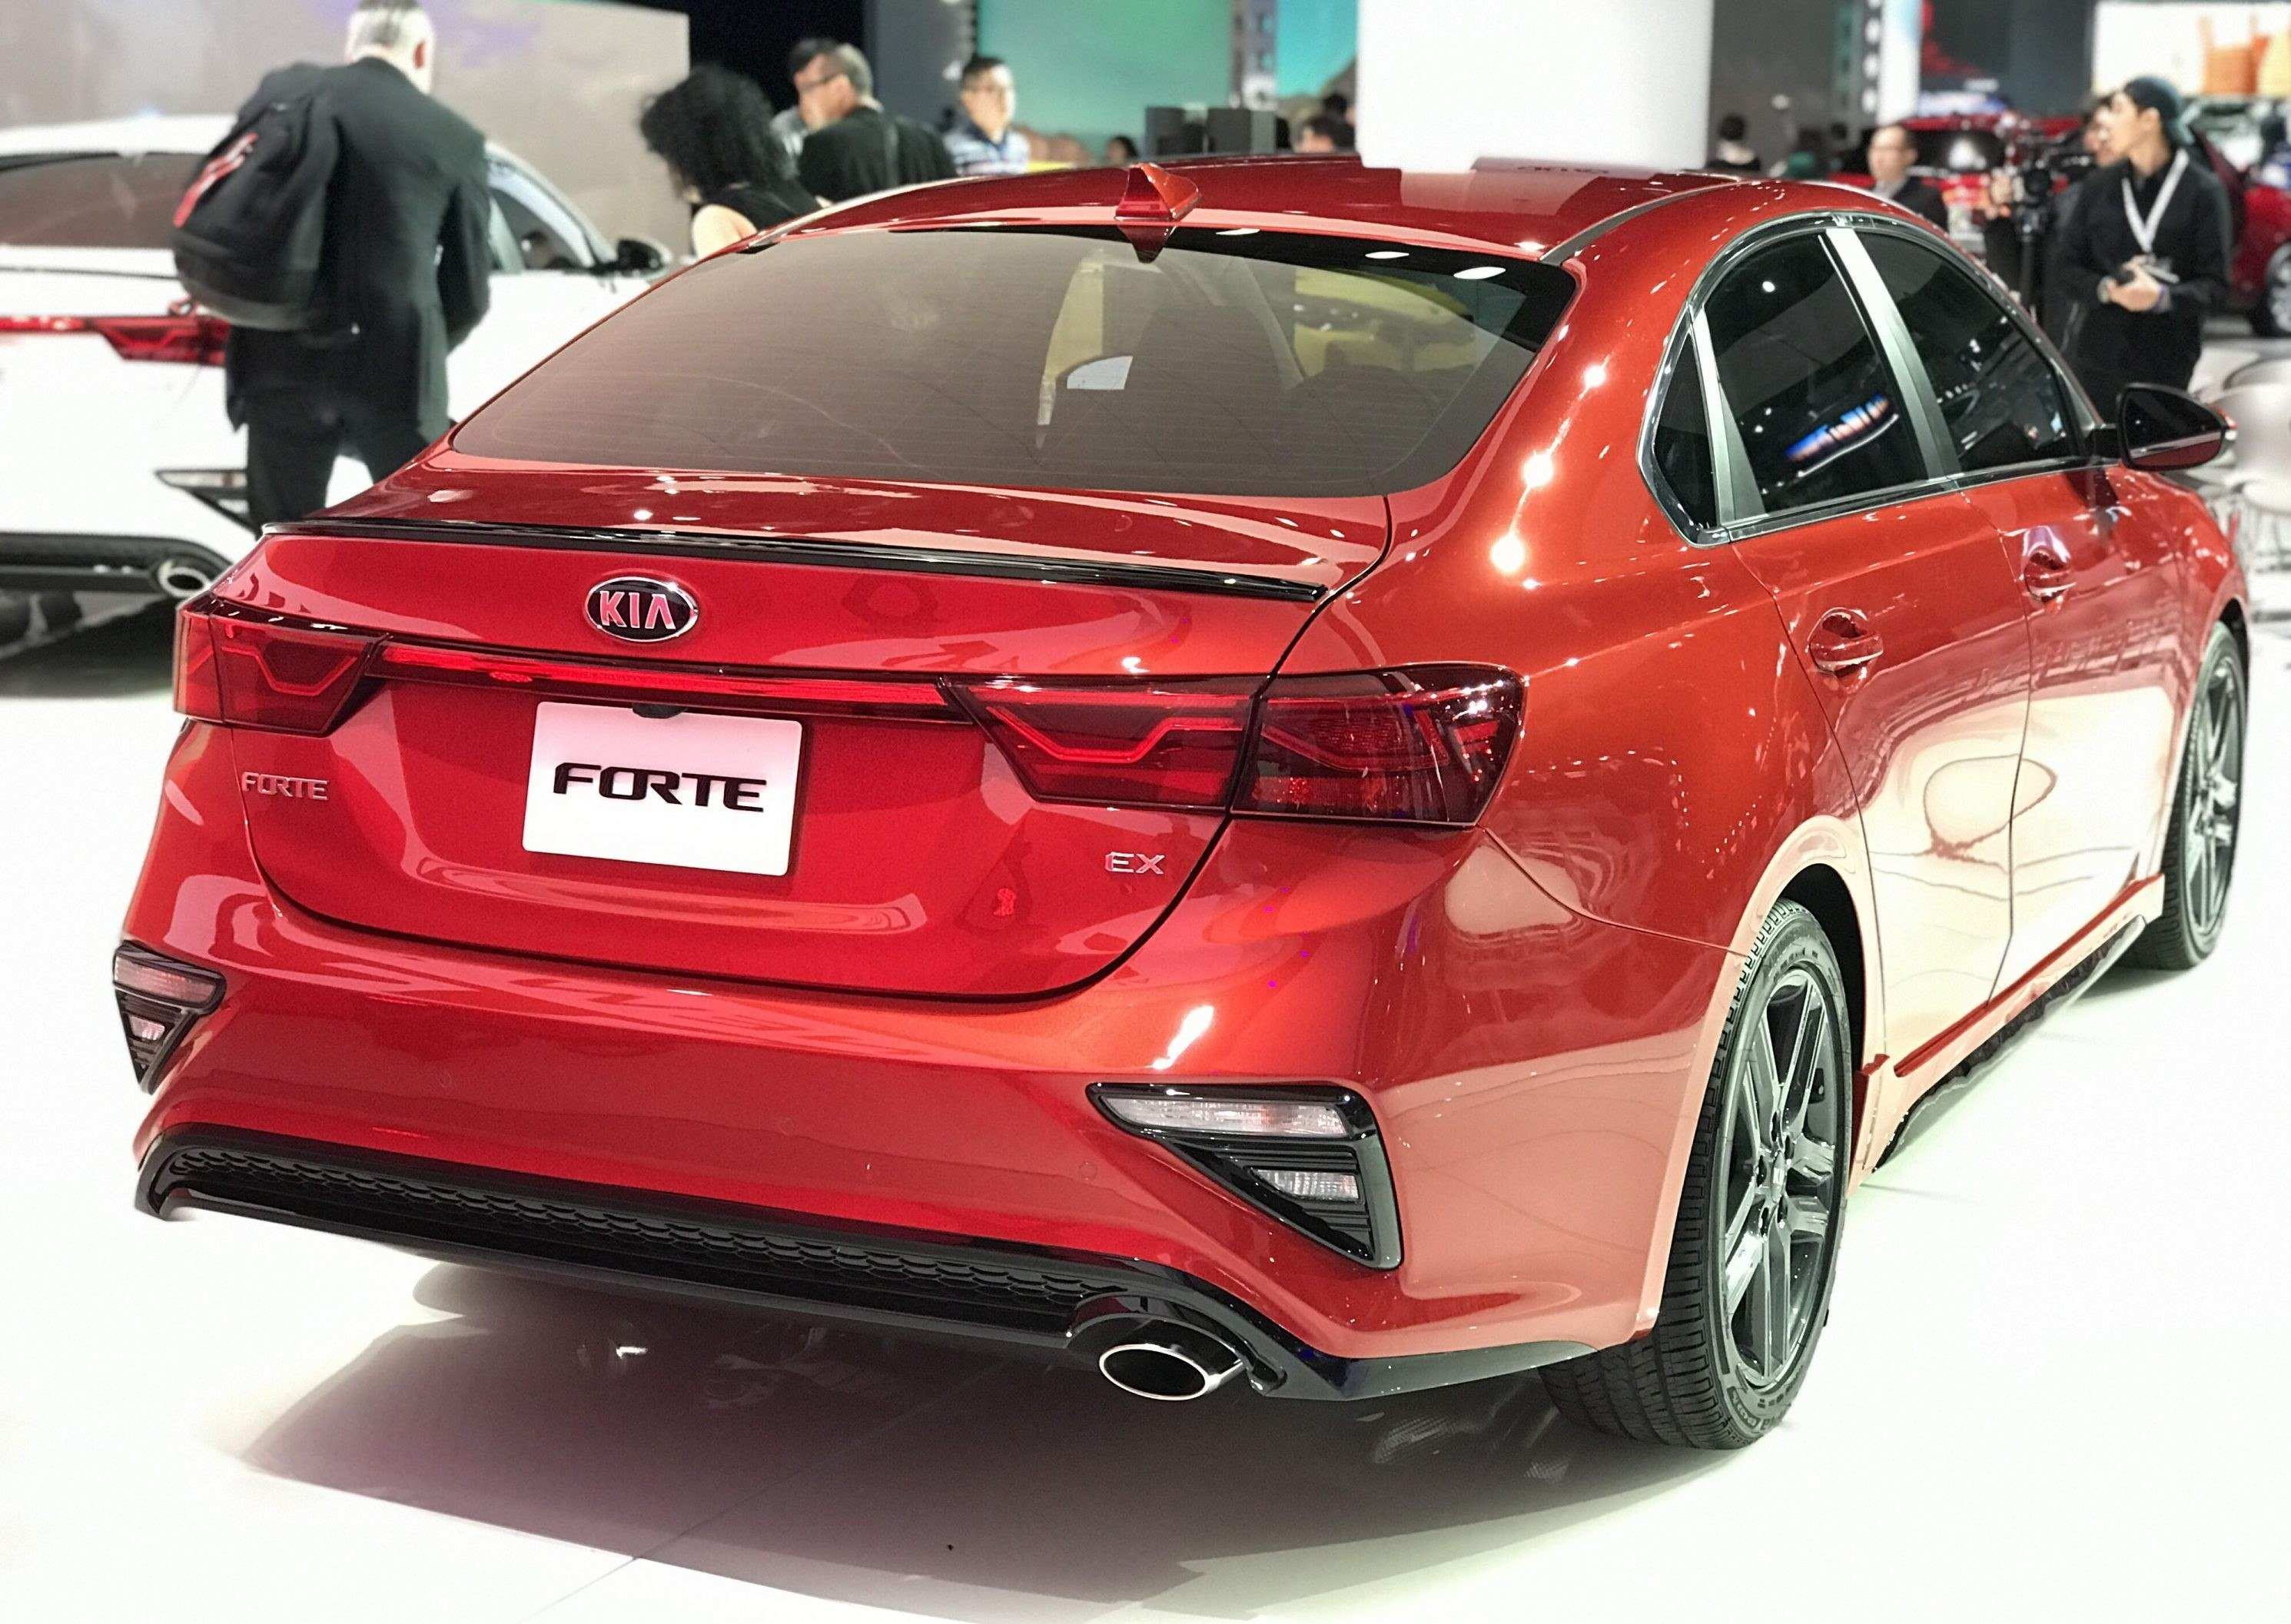 14 Gallery of Kia Forte 2020 Exterior Date Pricing with Kia Forte 2020 Exterior Date